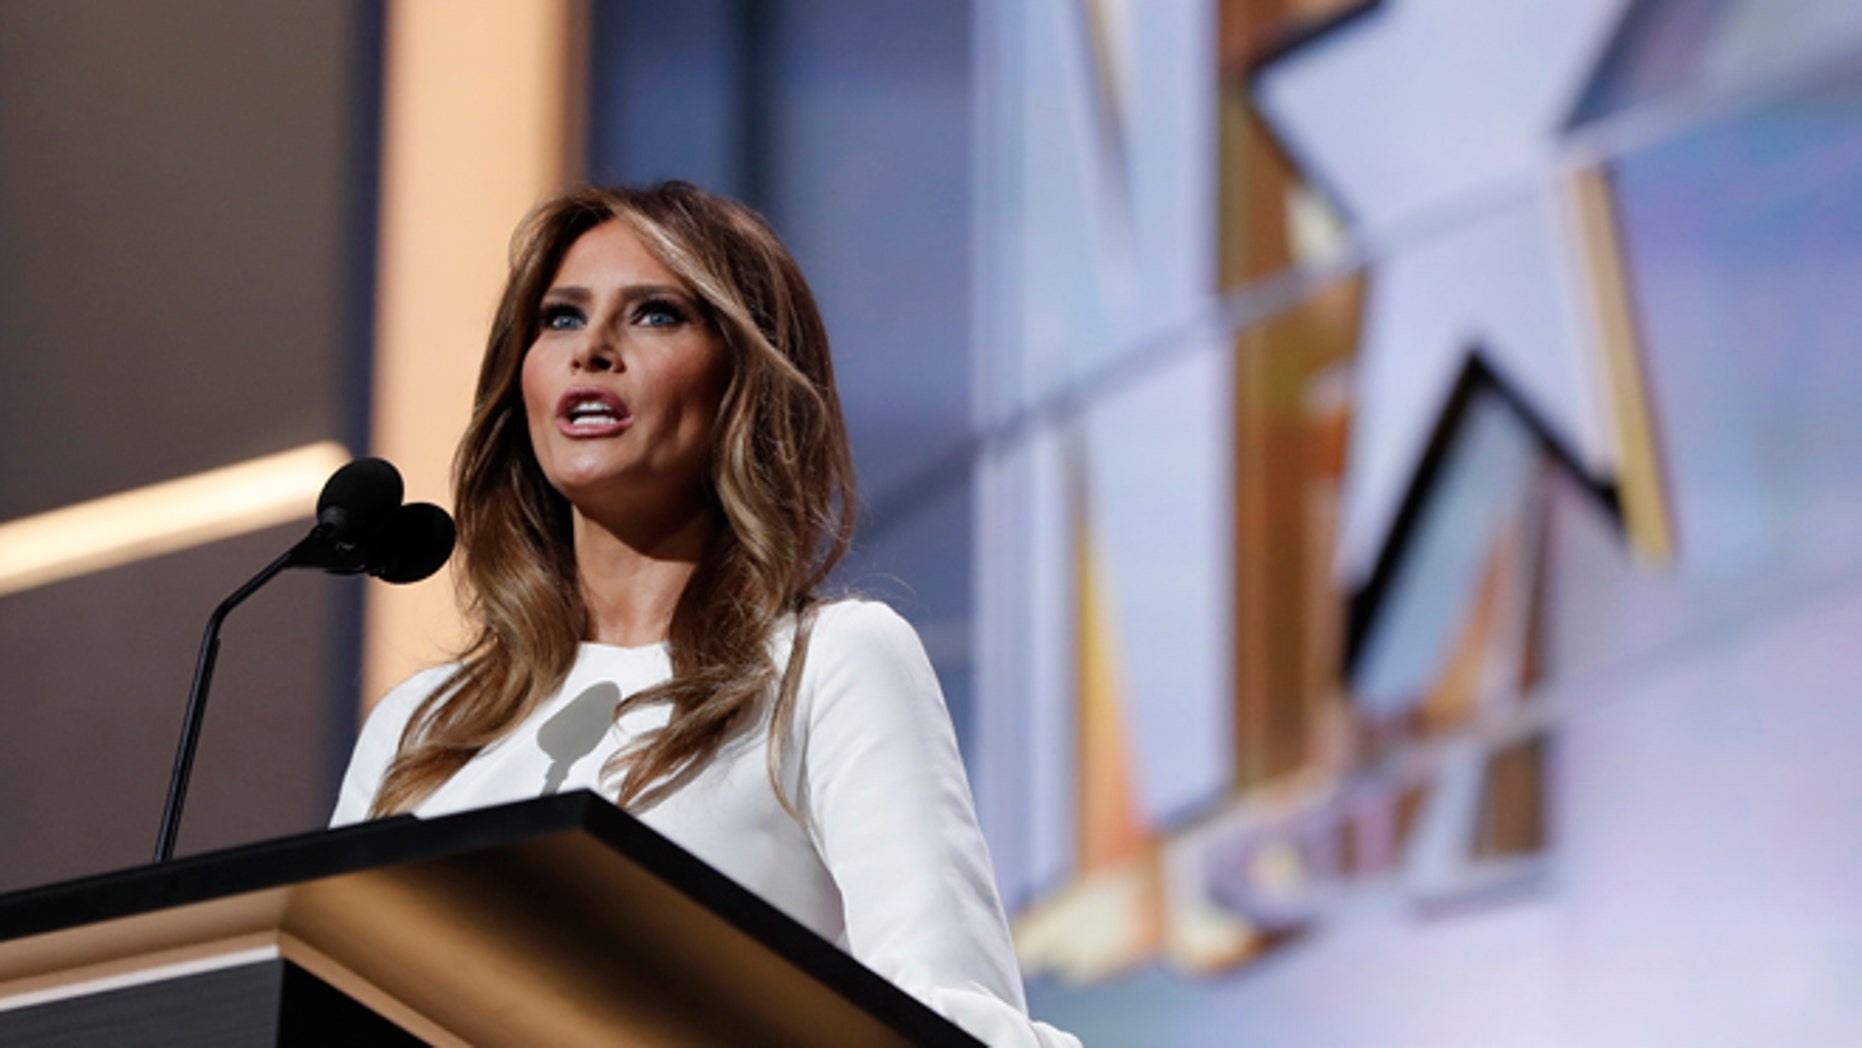 Melania Trump, wife of Republican Presidential Candidate Donald Trump, in the first day of the RNC in Cleveland, on July 18, 2016.